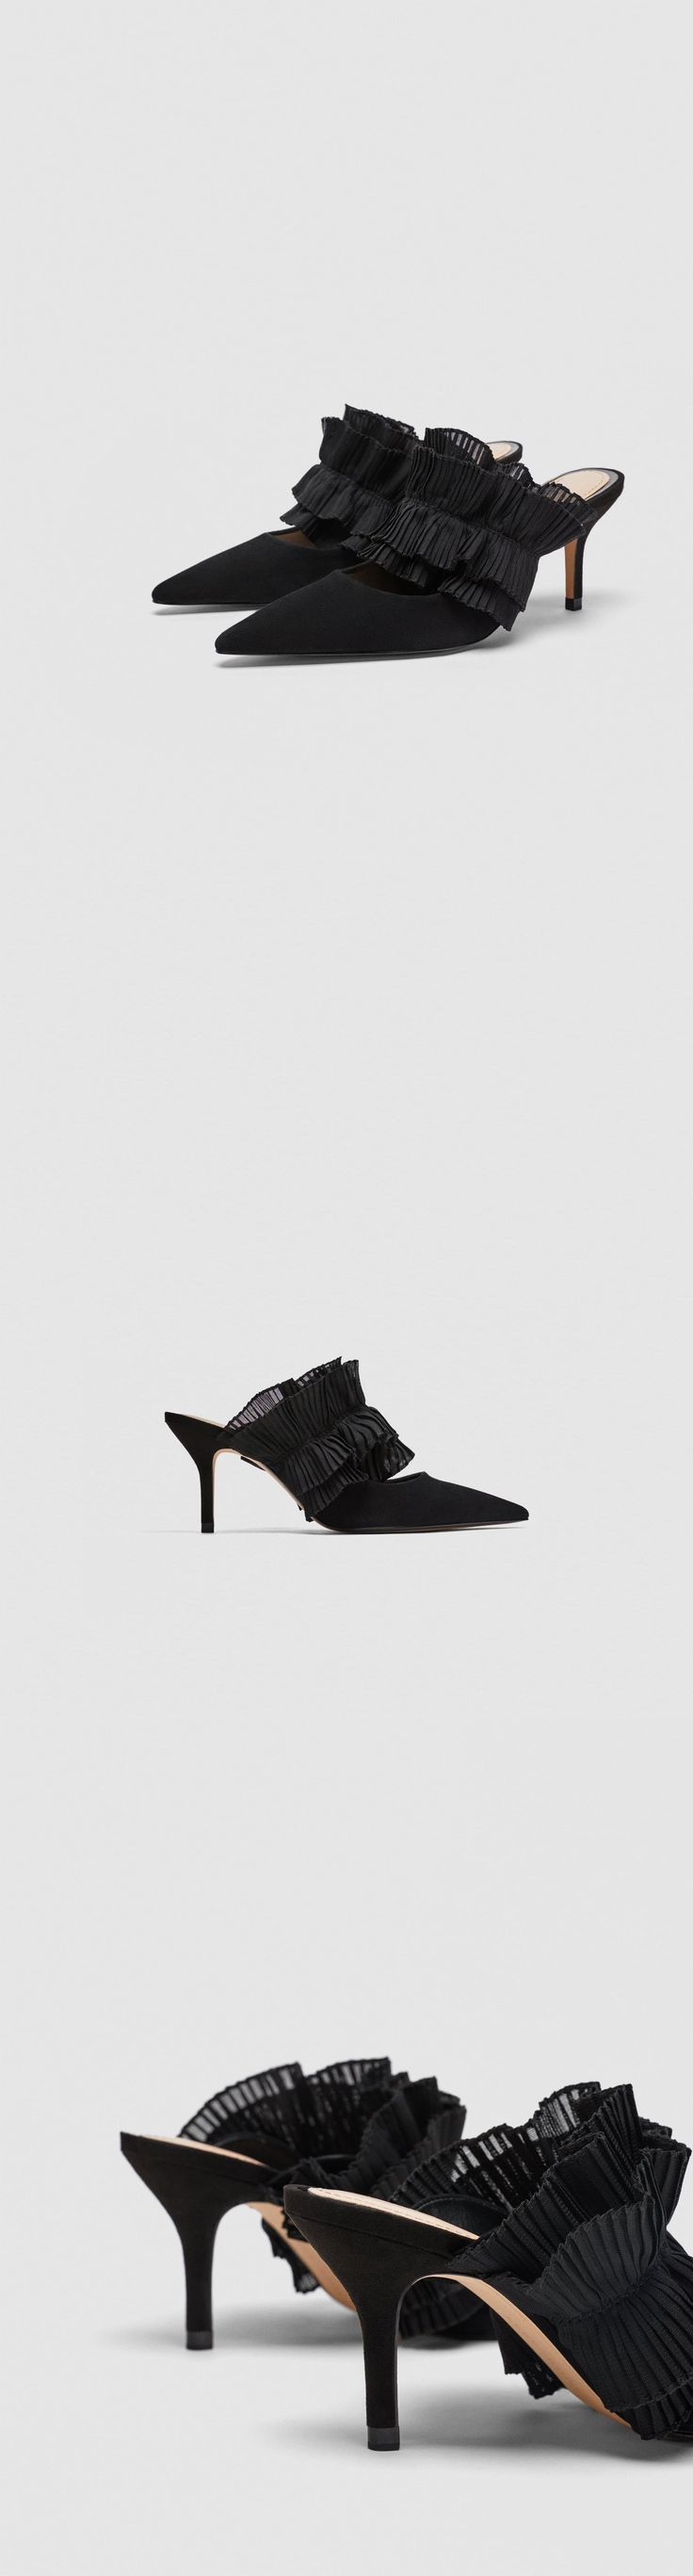 Leather Mule Court Shoes With Ruffles // 89.90 USD // Zara // Black leather mule high-heel court shoes. Pleated ruffle detail on the instep. Pointed toe. Heel height of 6.8 cm. / 2.6″